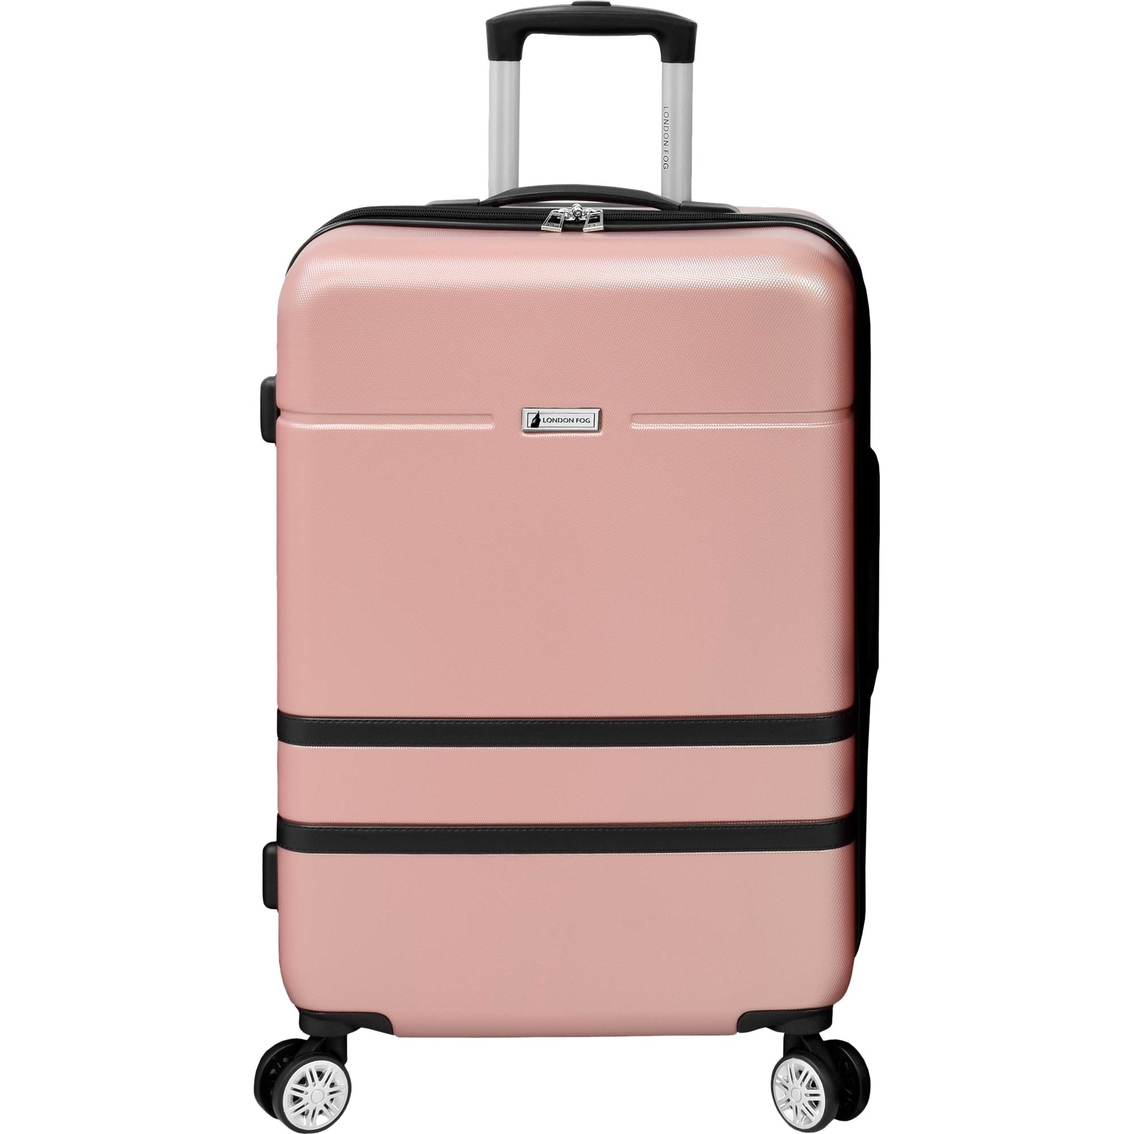 London Fog Weybridge Expandable Hardside Spinner Suitcase Luggage